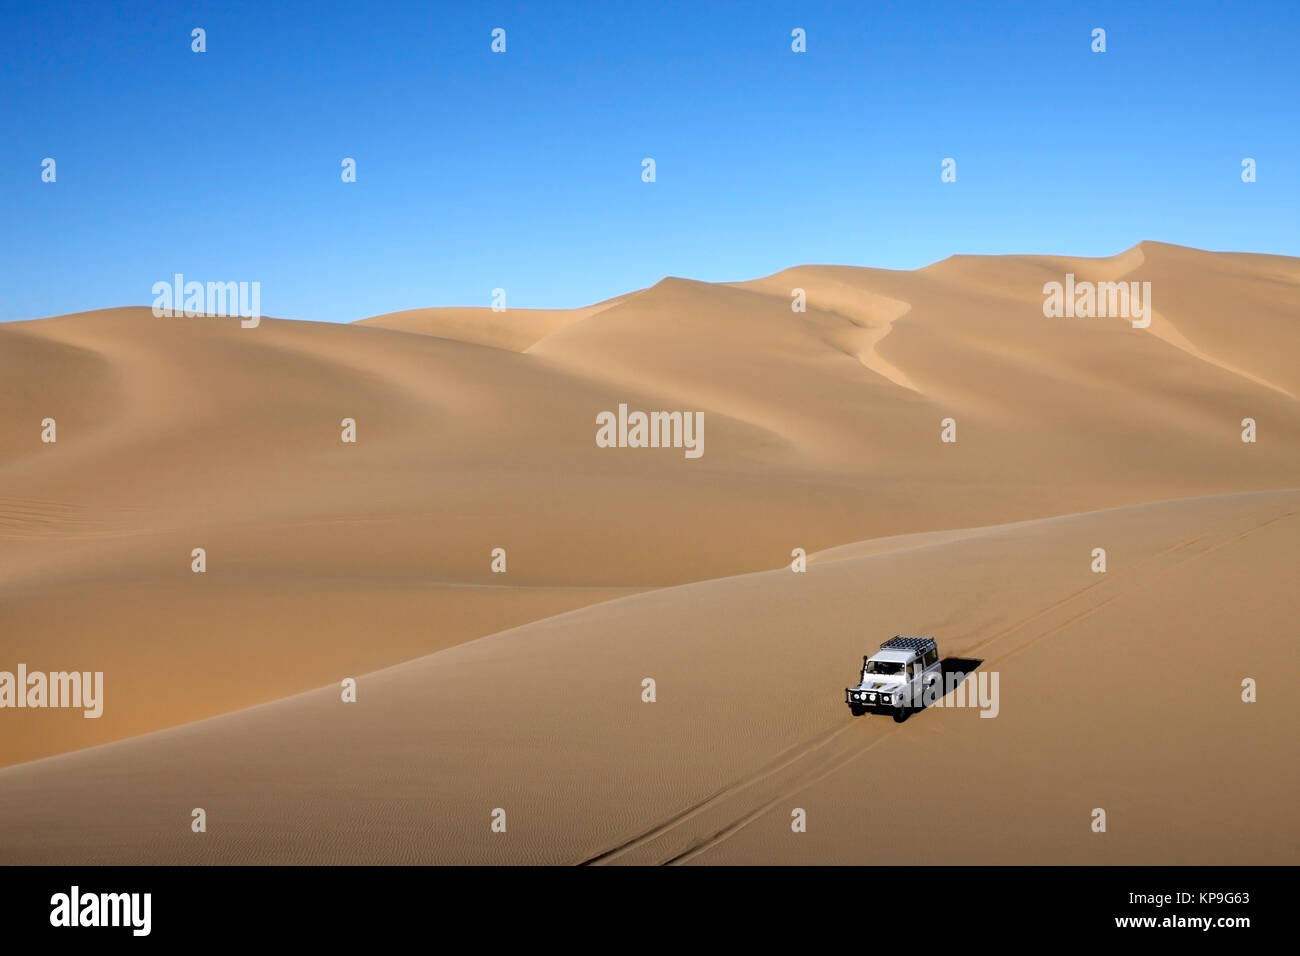 Vehicle drving over sand dunes in the Namib Desert of Namibia. - Stock Image